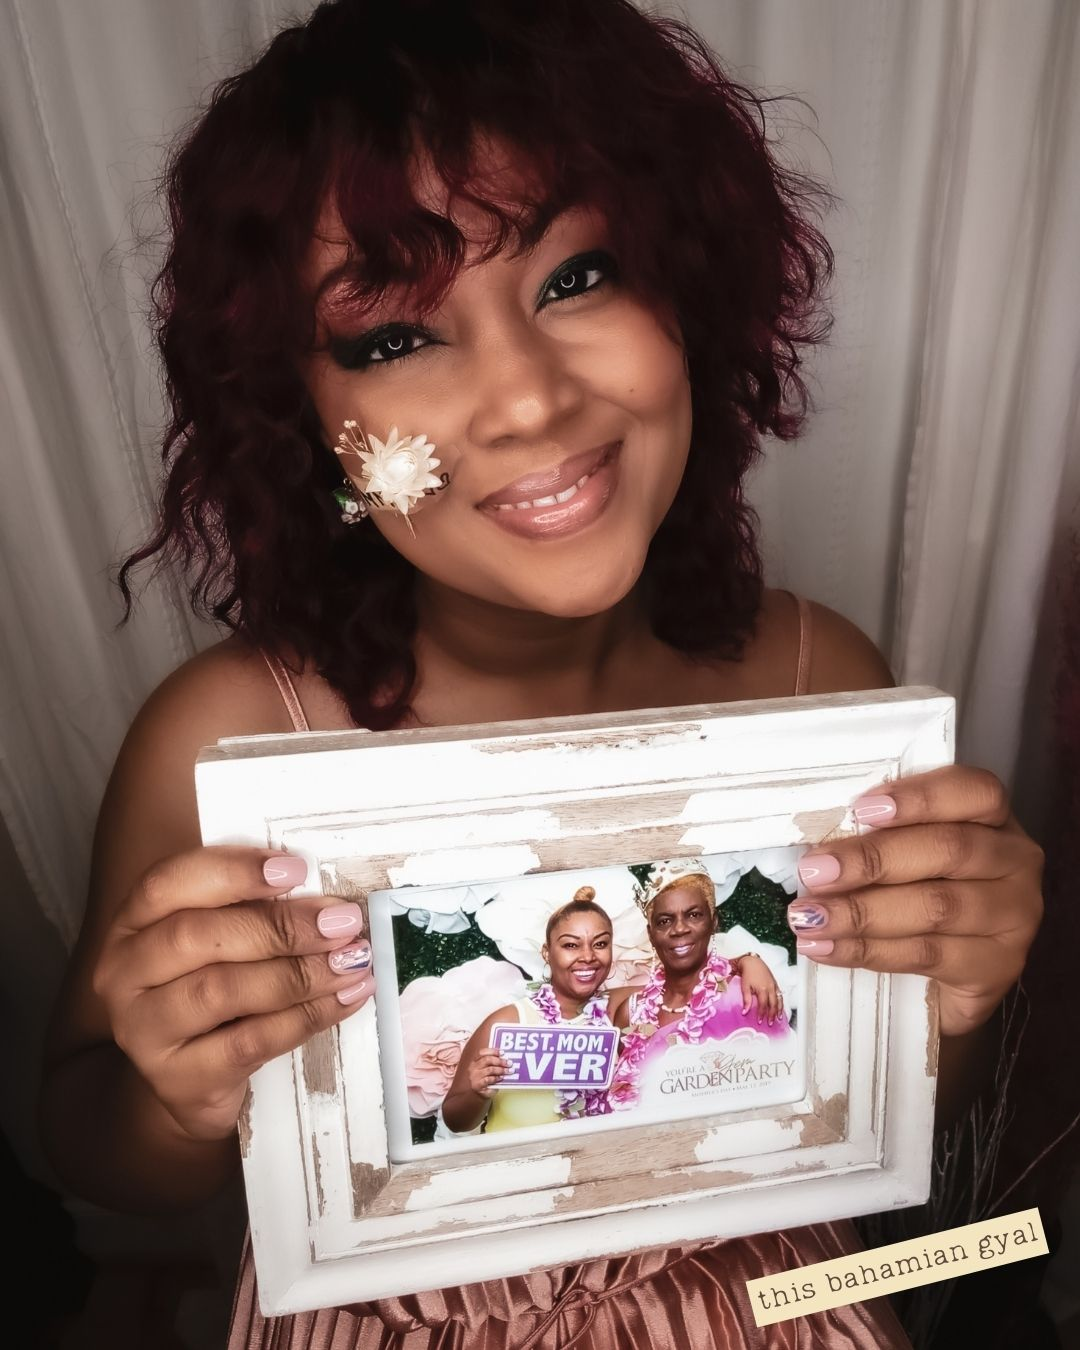 Washington DC blogger, Rogan Smith smiles as she holds up a picture of her and her mum in a whitewashed picture frame